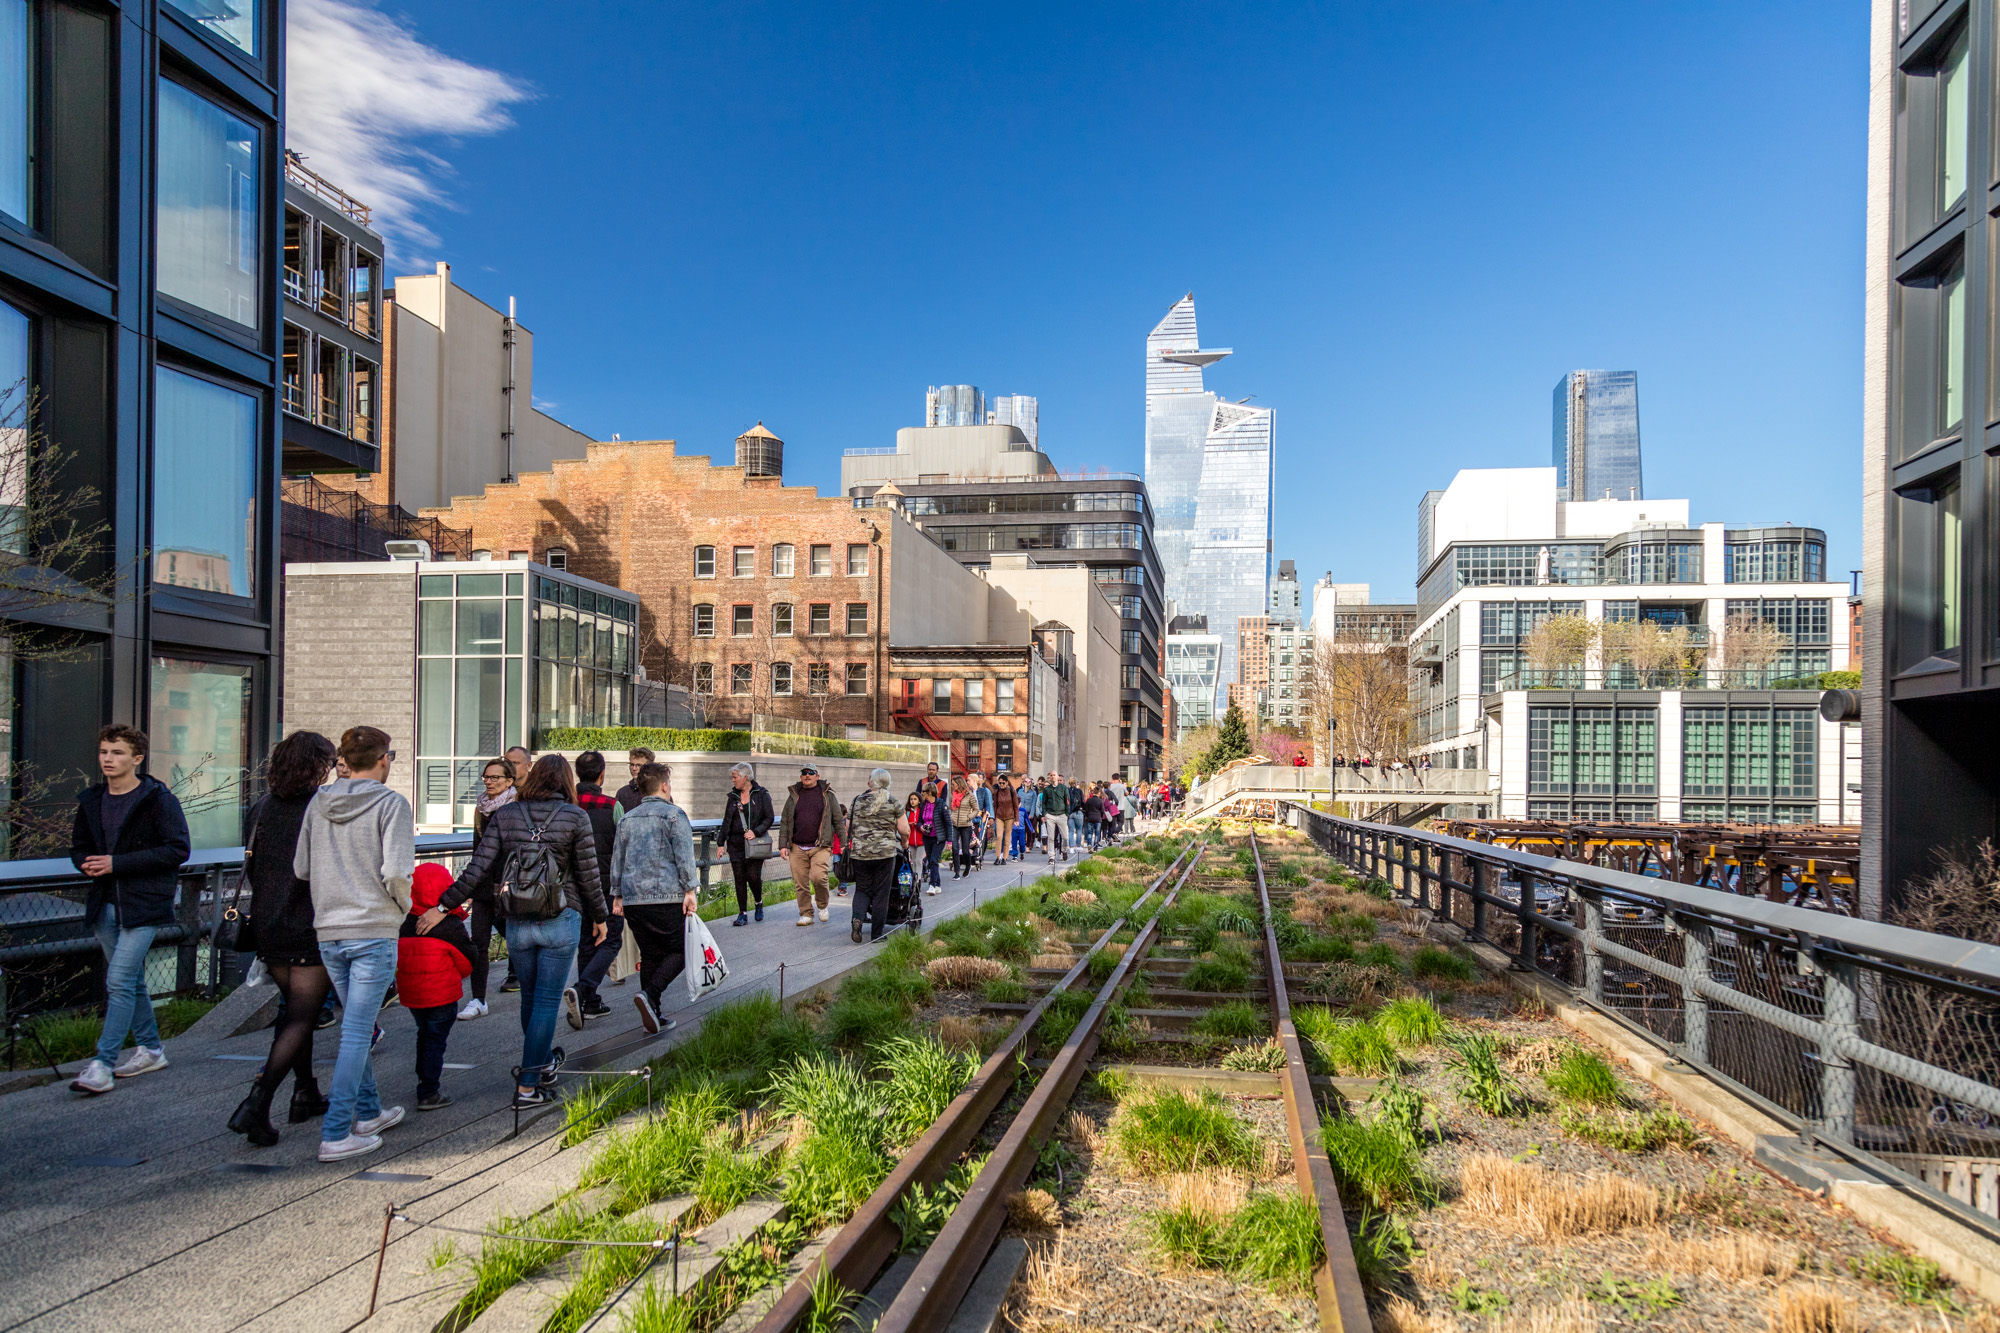 People walk along a path that is next to train tracks which have plants and grass growing between the tracks. There are city buildings in the distance.